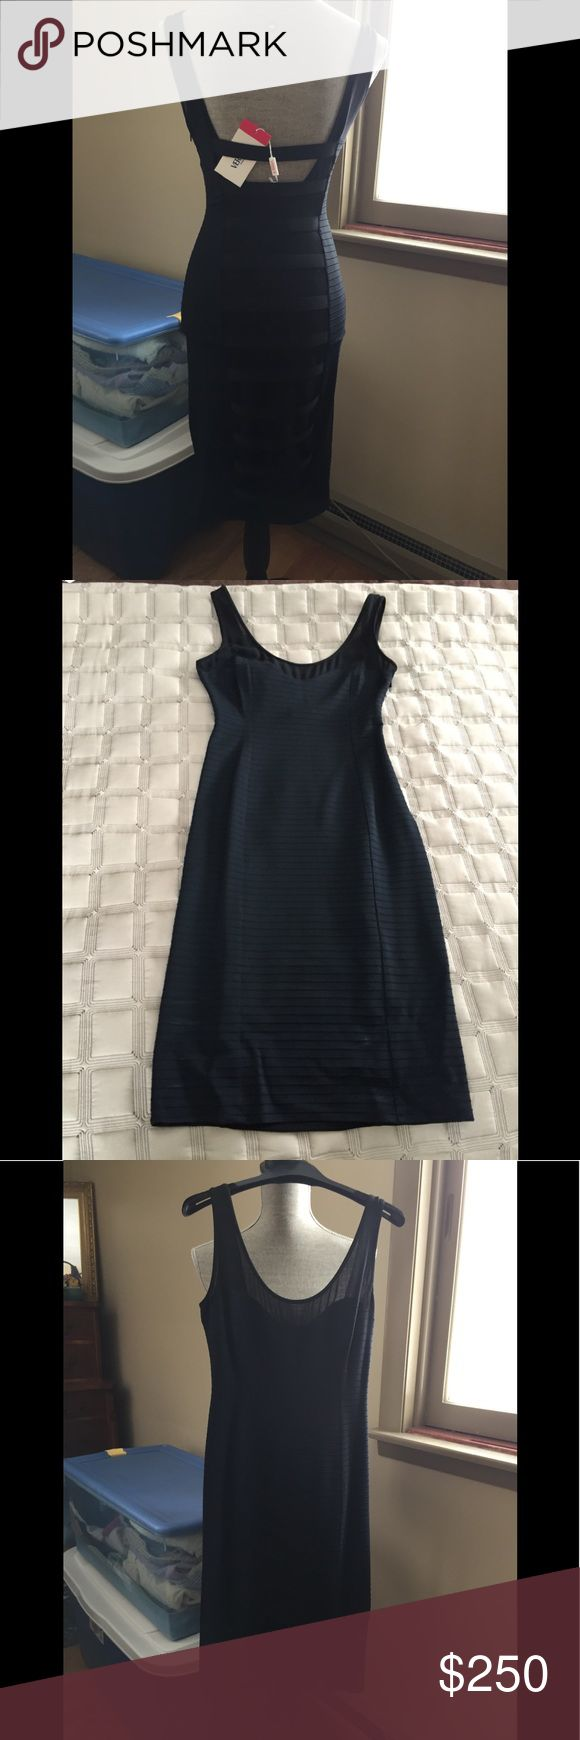 Versus Versace black bandage sheer back dress NWT (❌read full description) Versus Versace black bandage dress with sheer panel up middle of the total length of back of dress. Super sexy dress! The sheer panel has straps across back as well. Dress has sheer fabric across top of front and back. Side zip. ❌See photo of side shot, there are 2 areas that seam is undone (inch long)and needs stitching however dress has never been worn and I never removed tags. Still on Versace store hanger and…